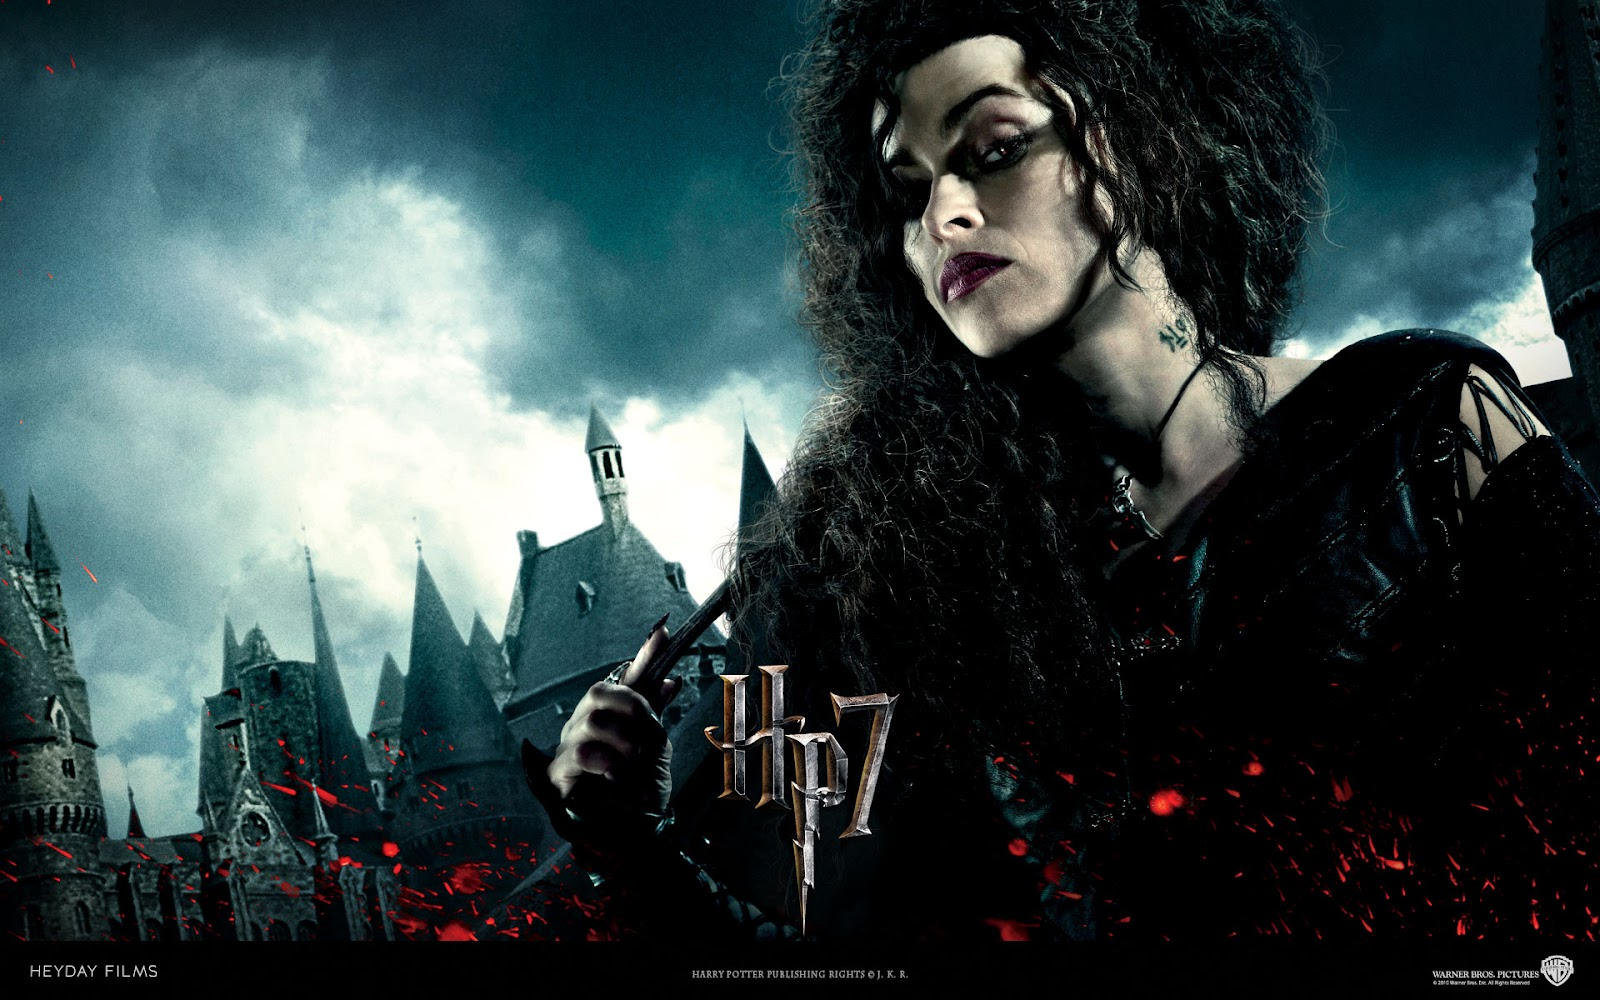 http://3.bp.blogspot.com/_UlKbSd1-6MA/TP11q15FQiI/AAAAAAAAApY/9aT1xkEHHqE/s1600/Harry-Potter-Deathly-Hallows-Wallpaper-bellatrix2.jpg